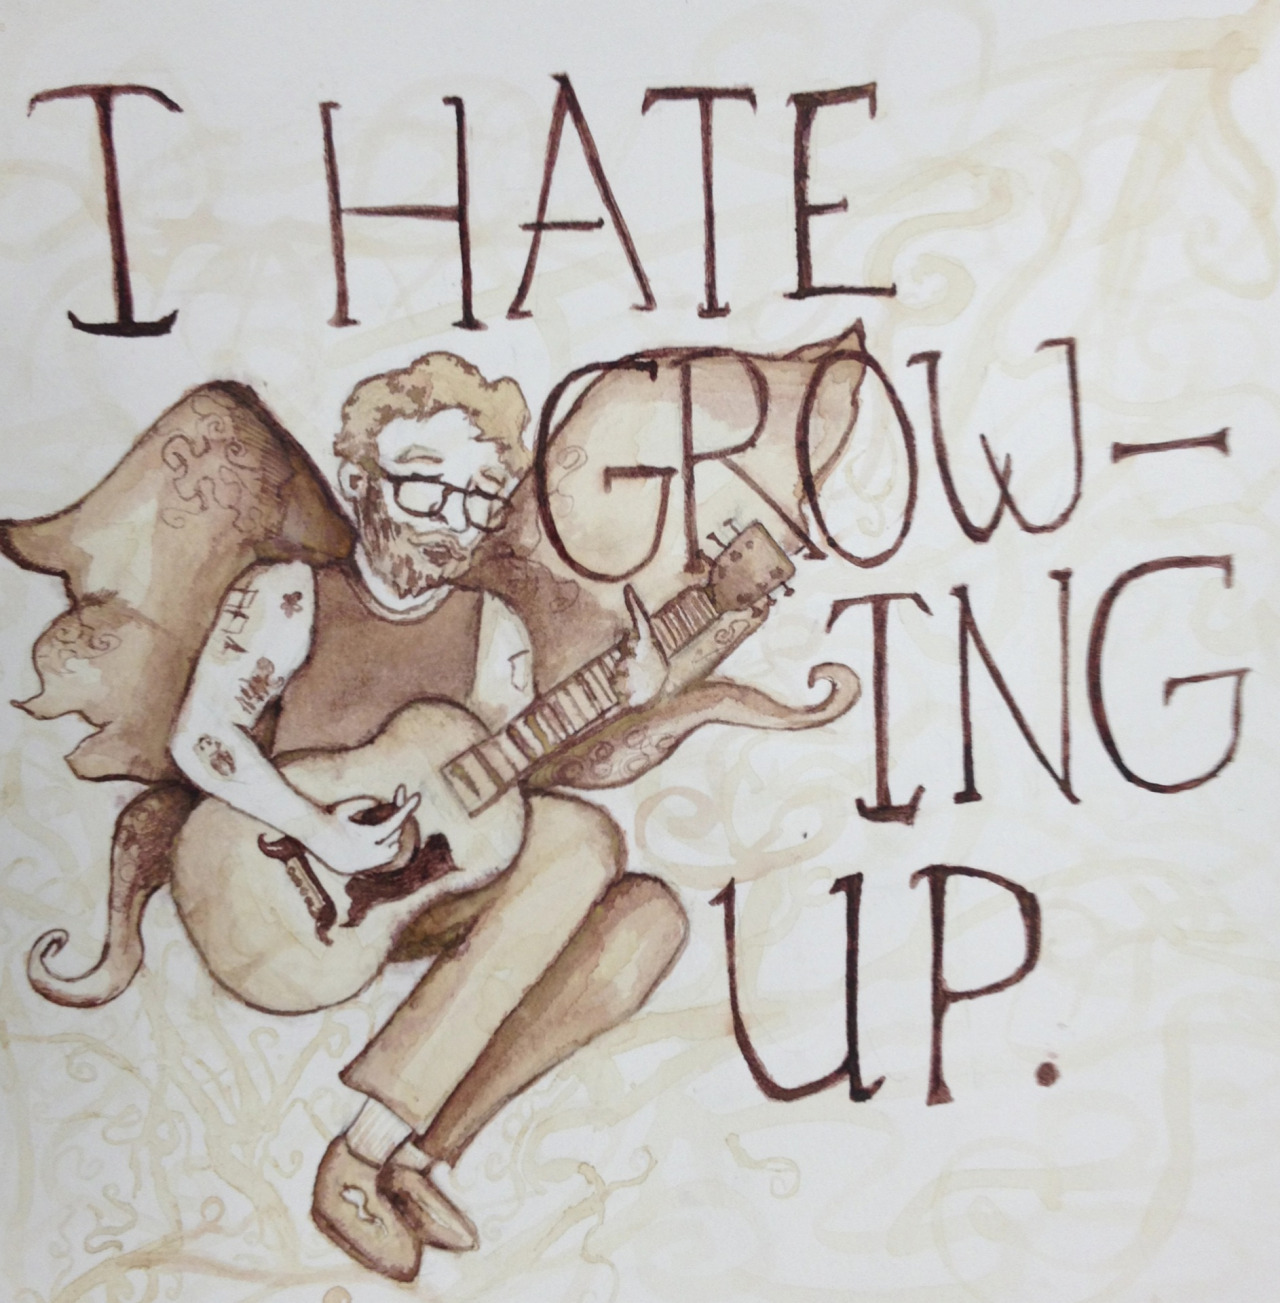 I painted Andrew Jackson Jihad with coffee because I quite enjoy his sad sack songs. And growing up really sucksss~